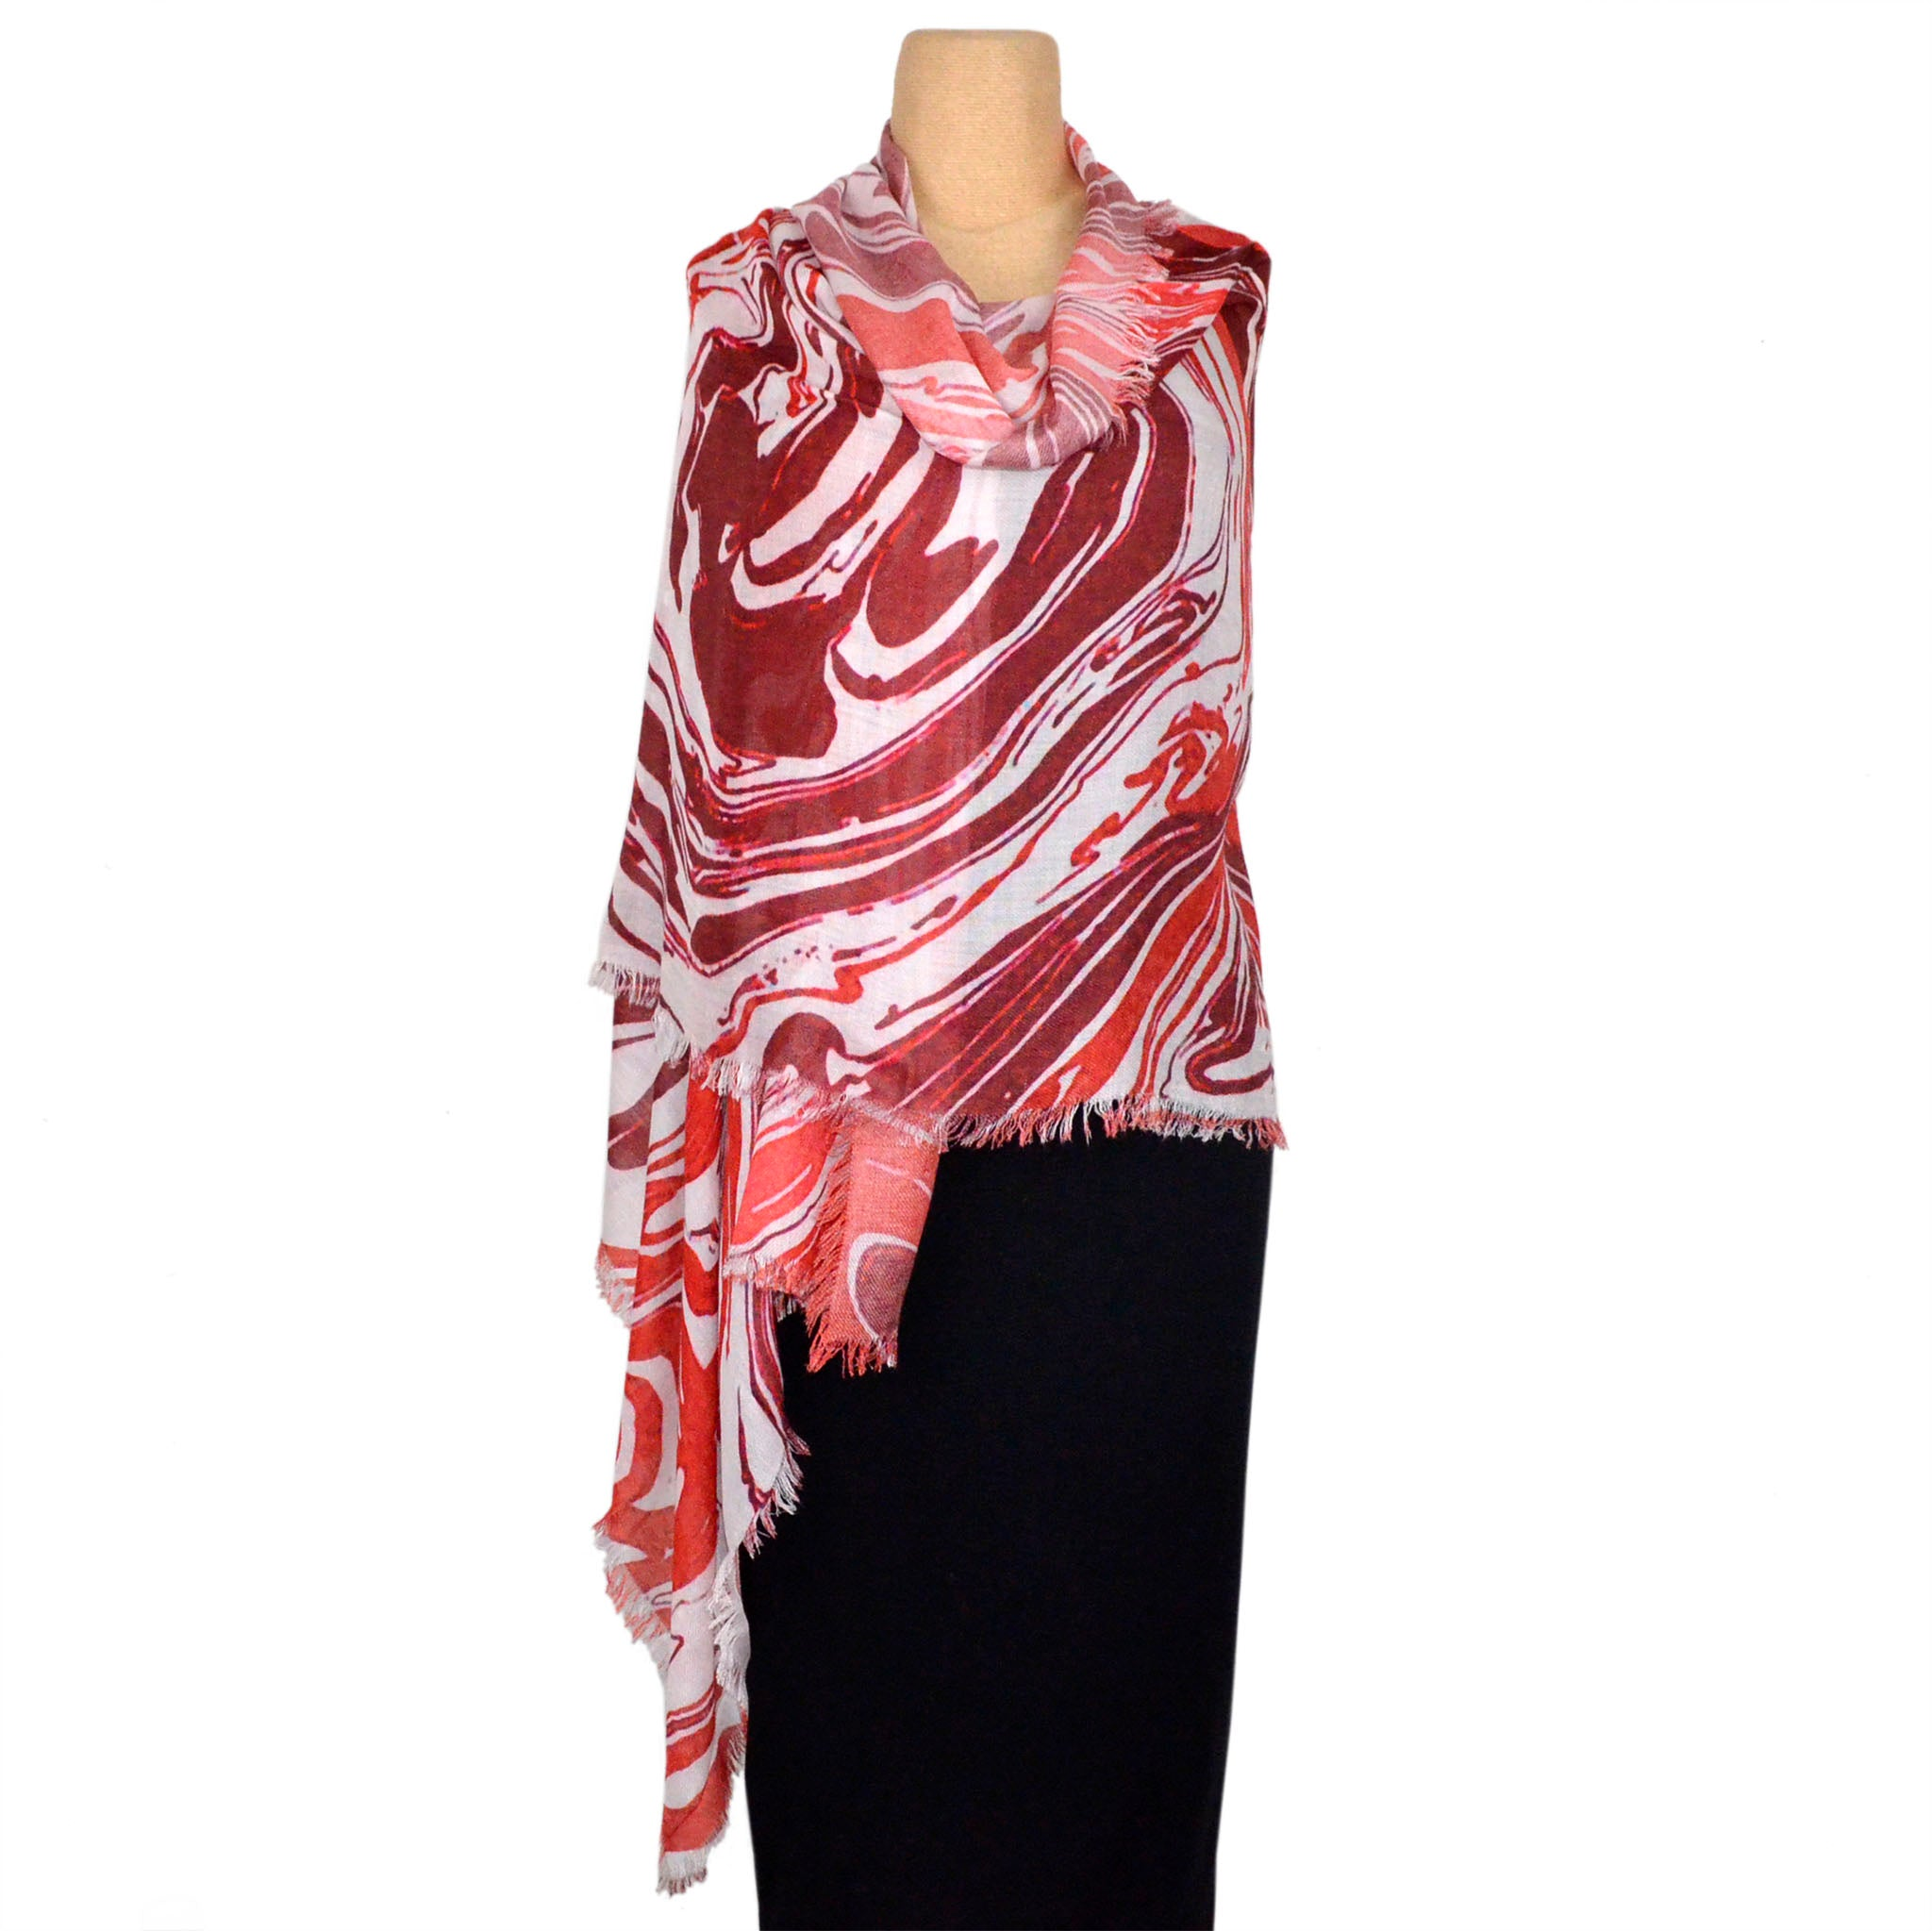 Kala Scarf, Modal, Red/Cream